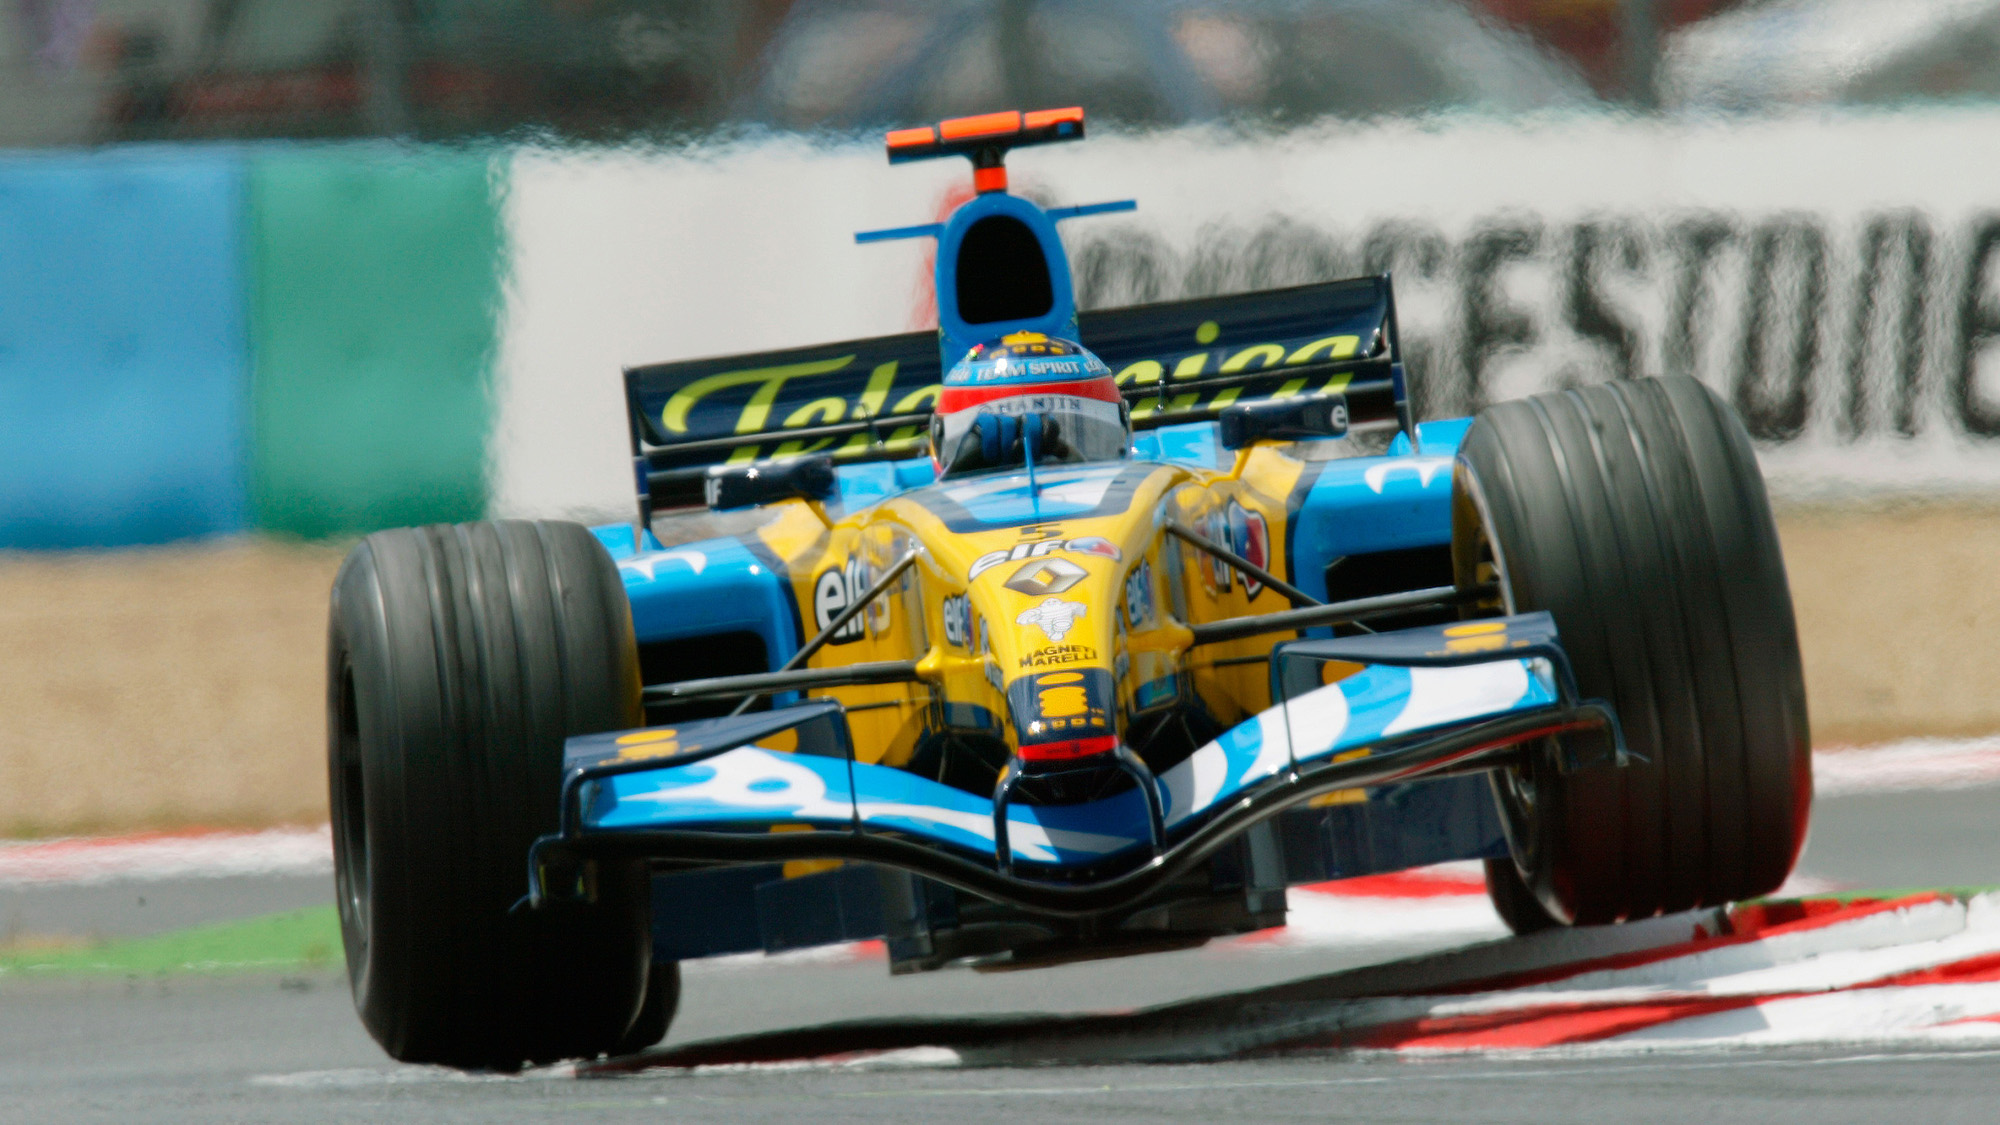 Fernando Alonso goes over a kerb in the 2005 renault R25